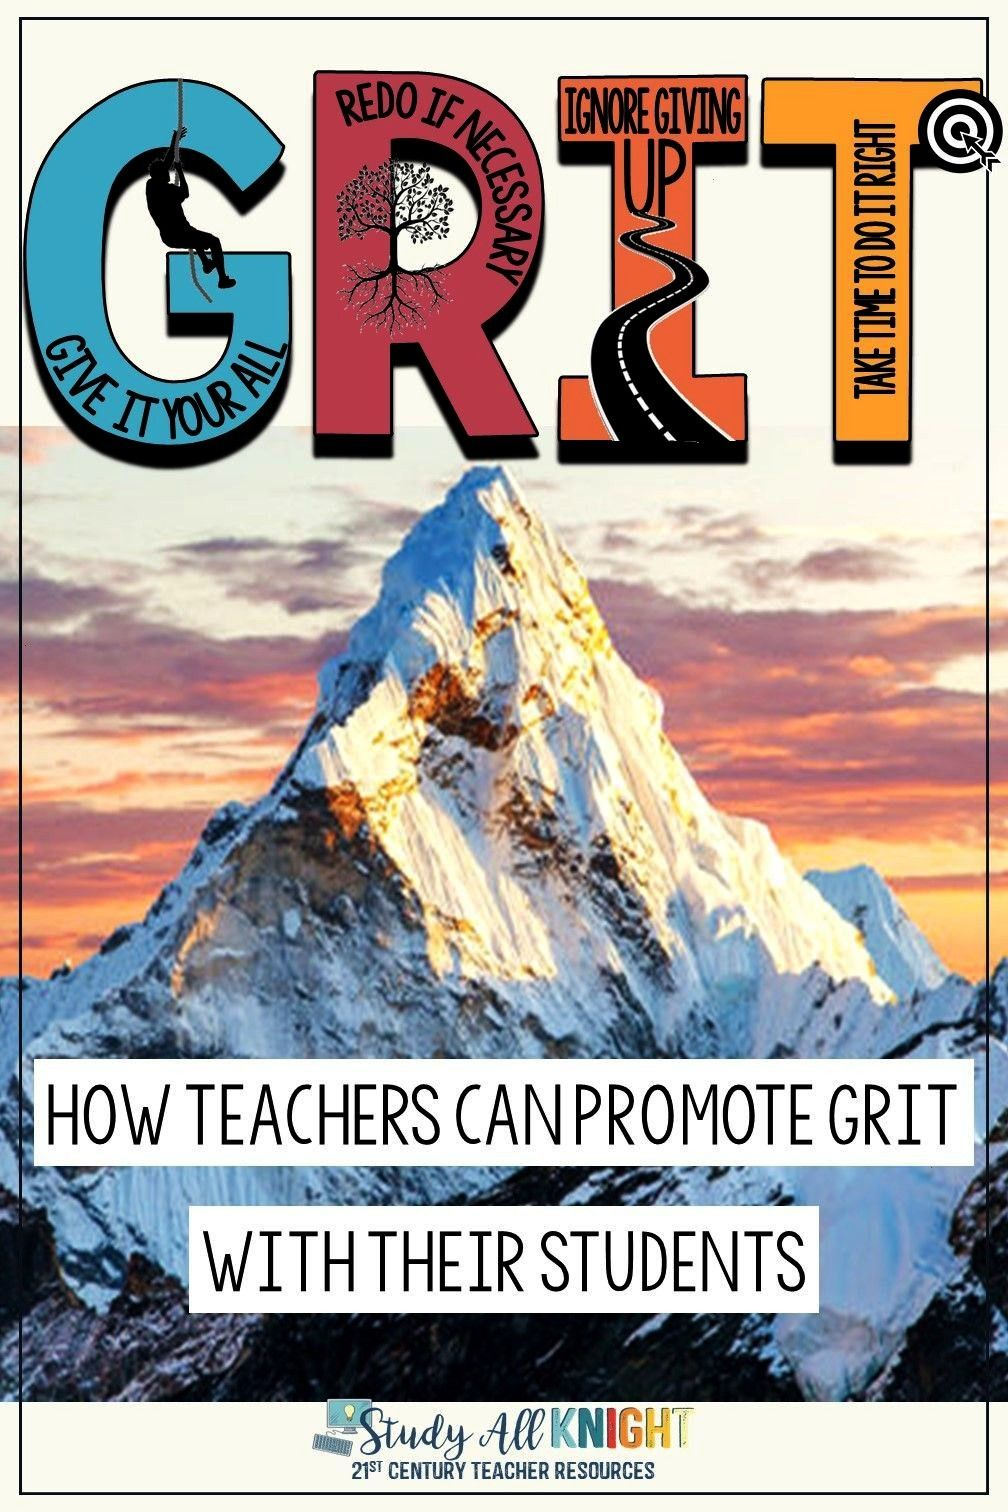 Goals By Promoting GRIT In Your Classroom. What Does It Mean to Have GRIT? How Can Teachers Promote